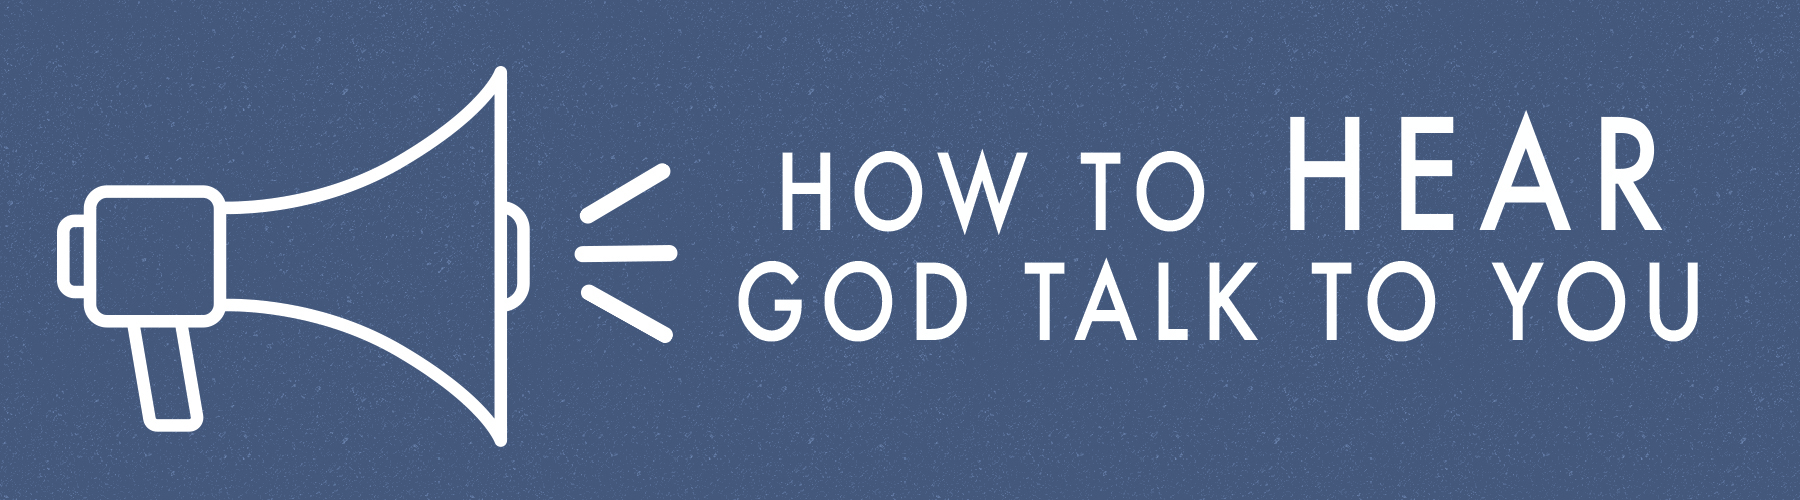 How To Hear God Talk To You